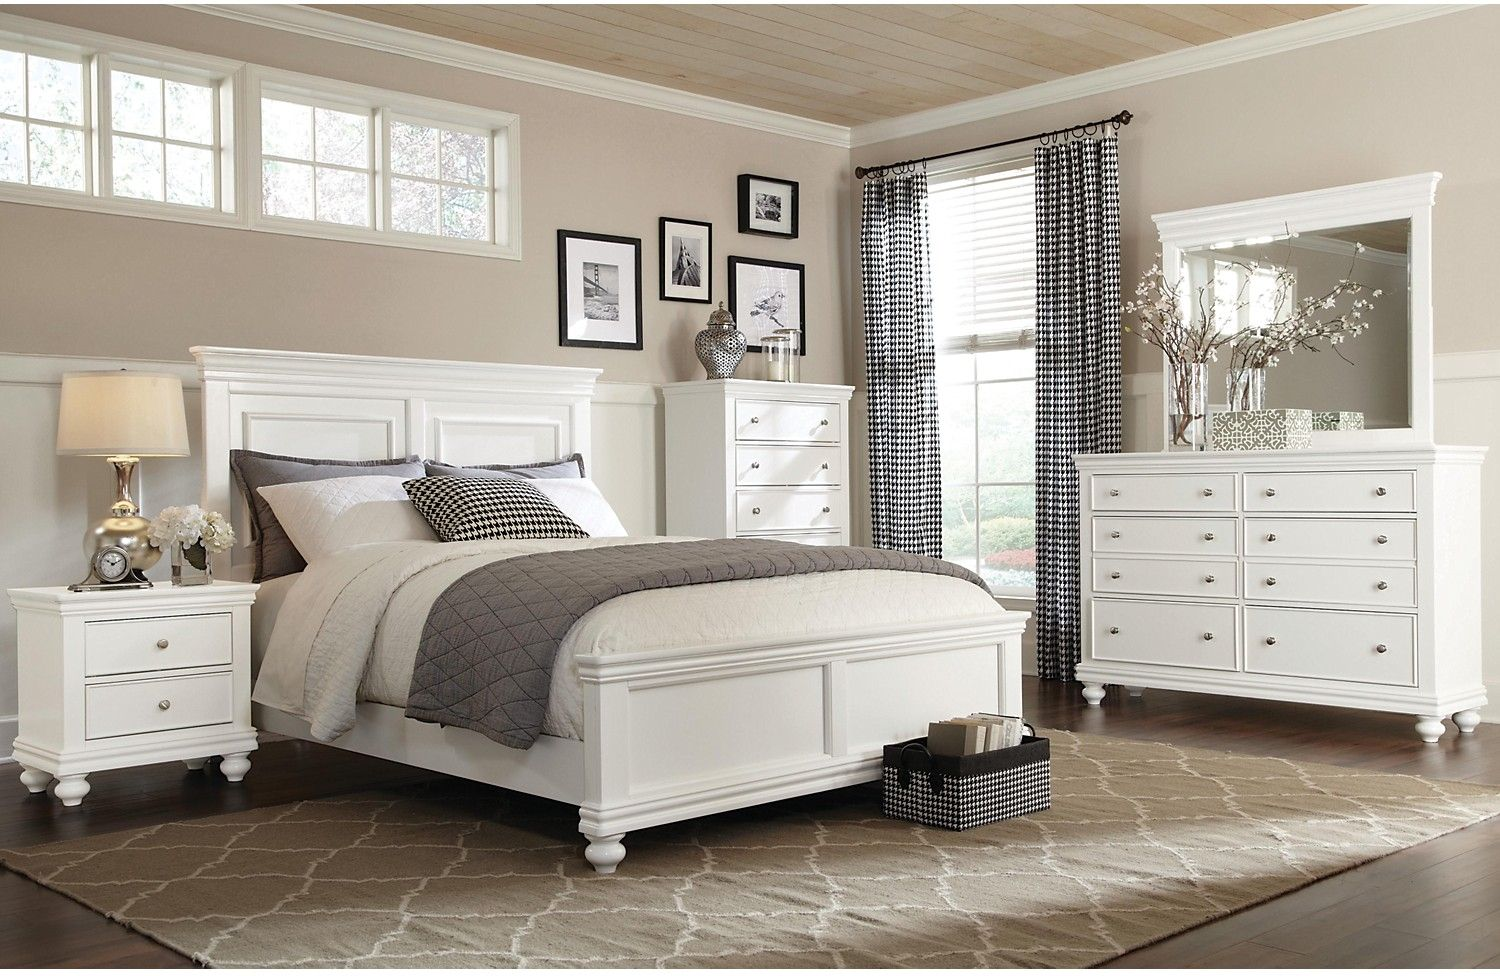 bridgeport 6 piece queen bedroom set white queen 14020 | 7d450176b296f4ce7dd7f8b1b92f72c2